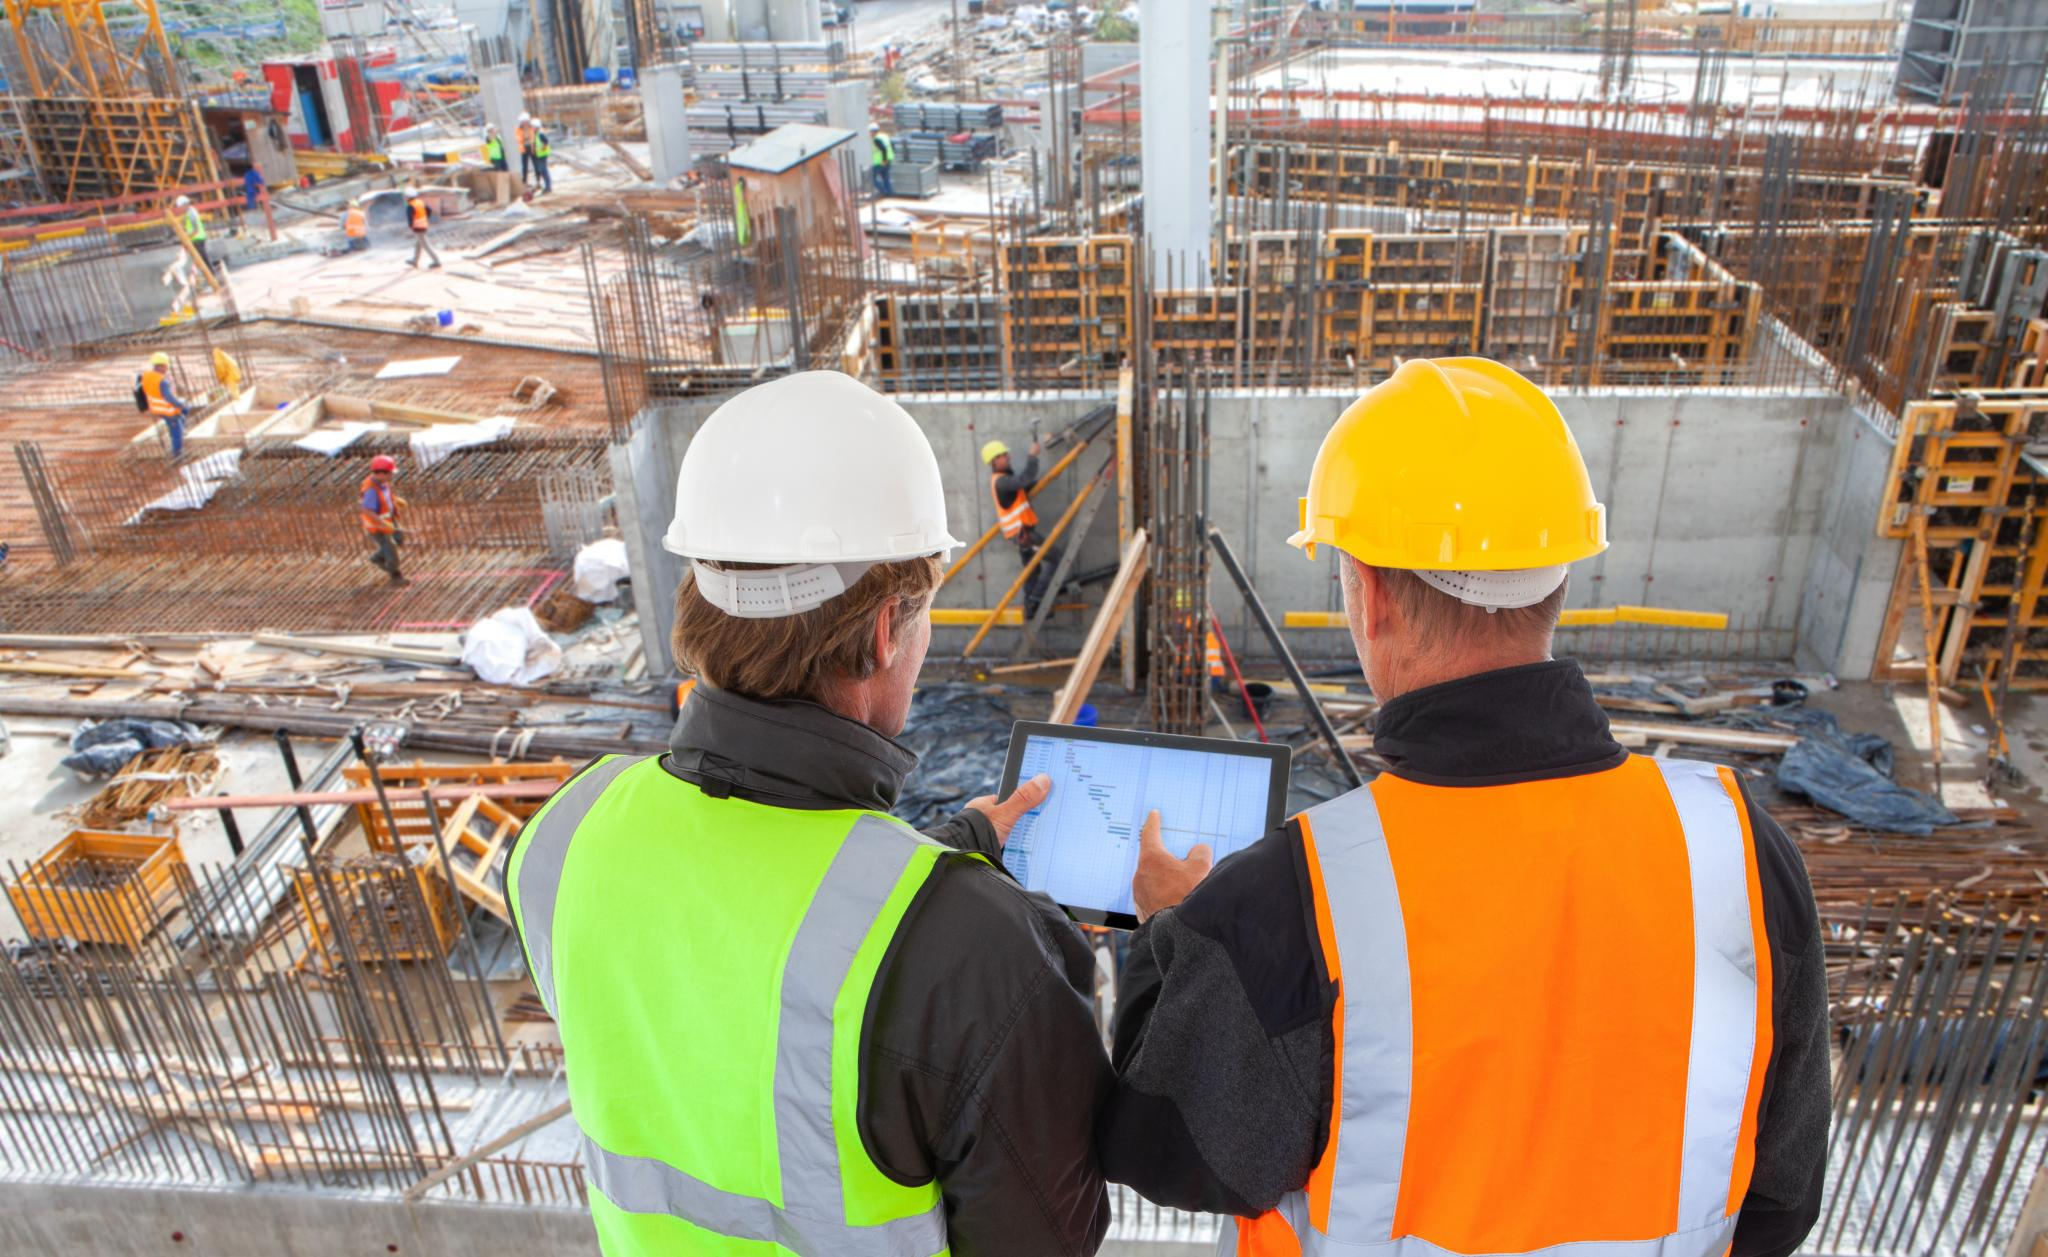 an image of construction and architecture personnel at an active construction site